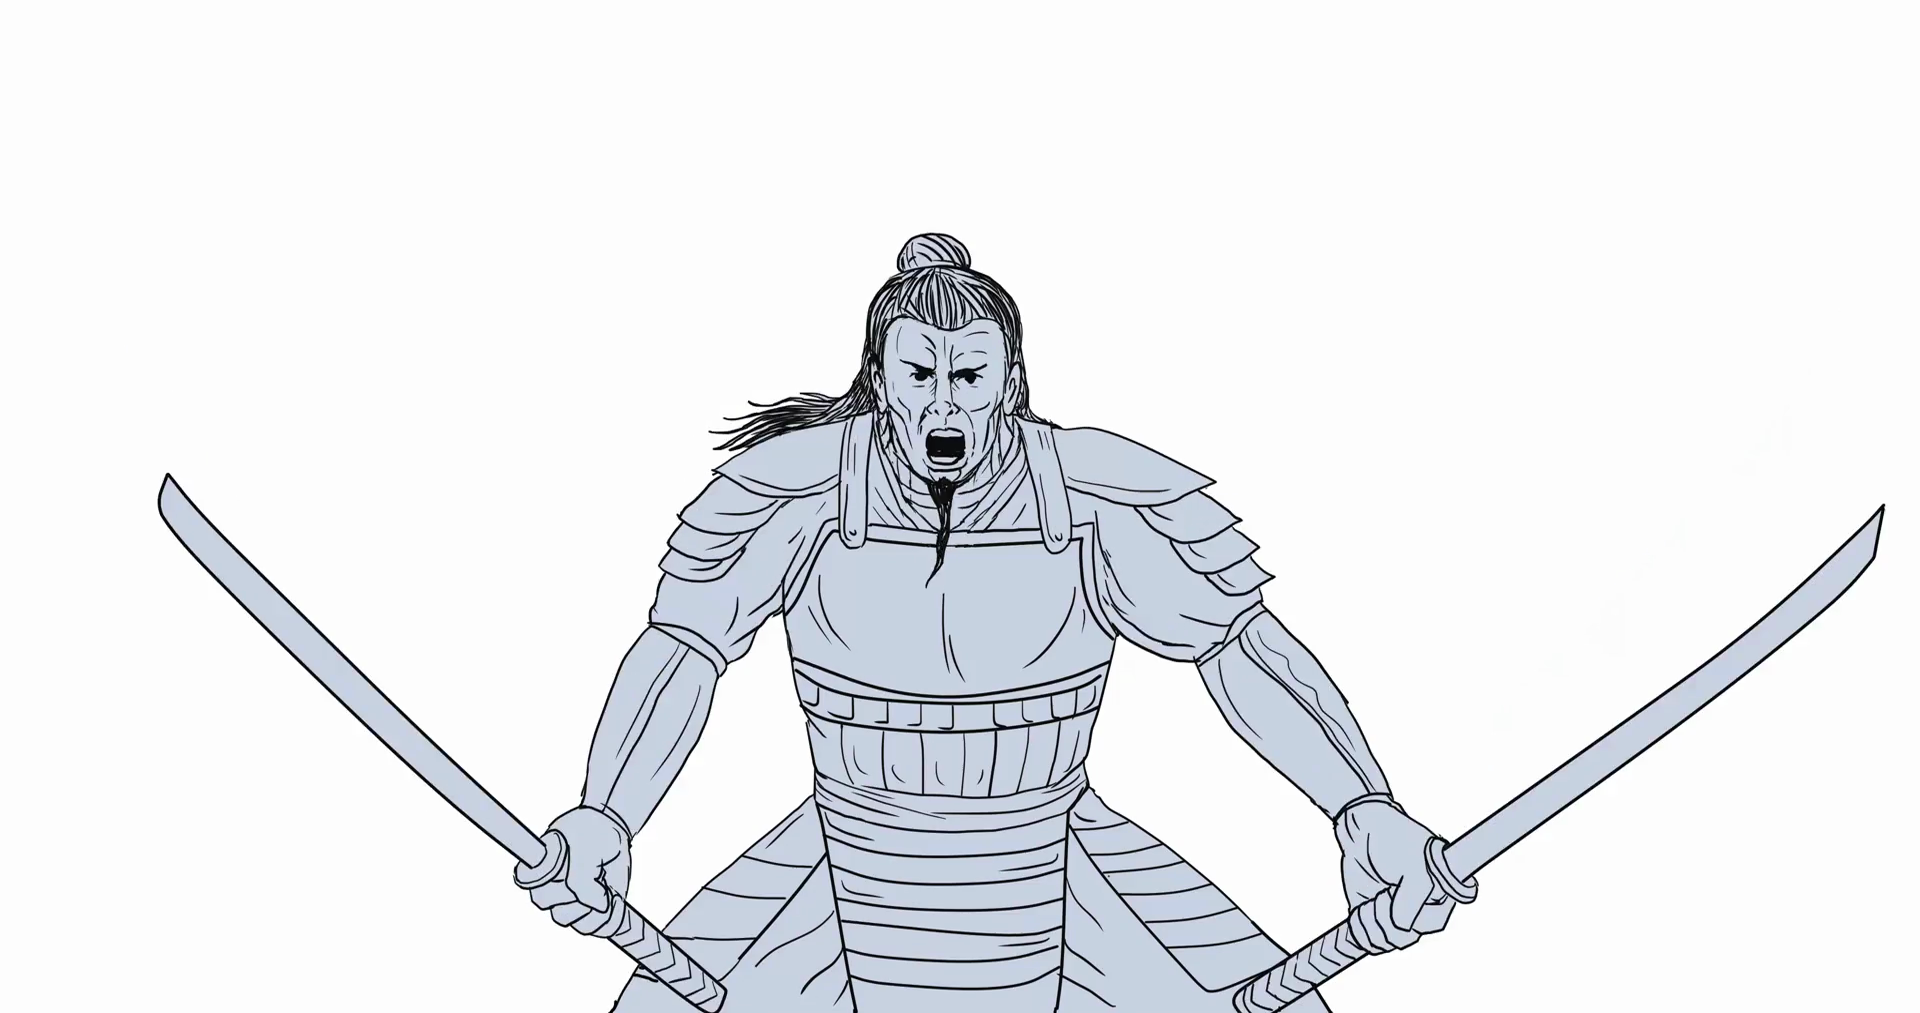 Samurai Warrior Drawing at GetDrawings.com | Free for personal use ...